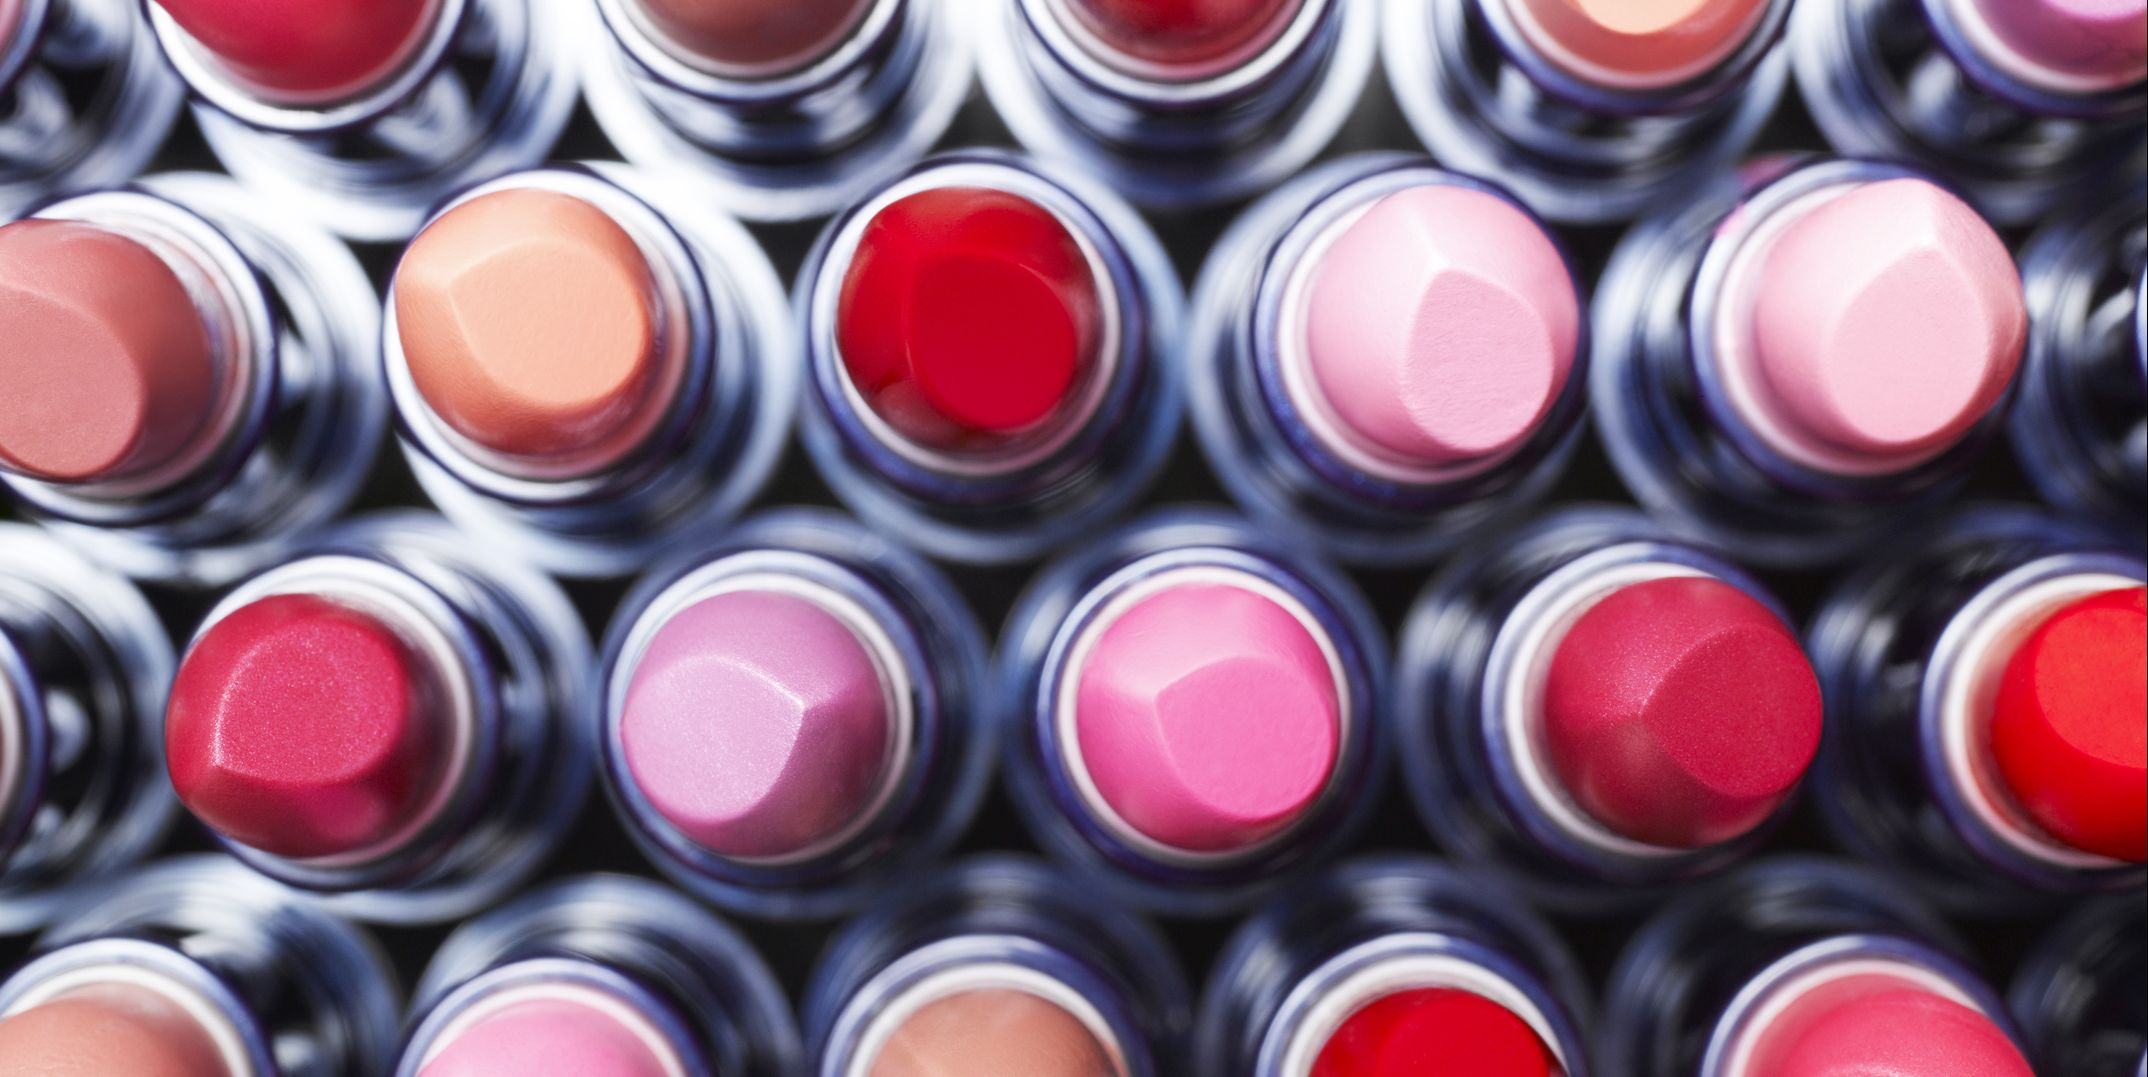 Here's How You Can Get Any MAC Lipstick You Want for Free